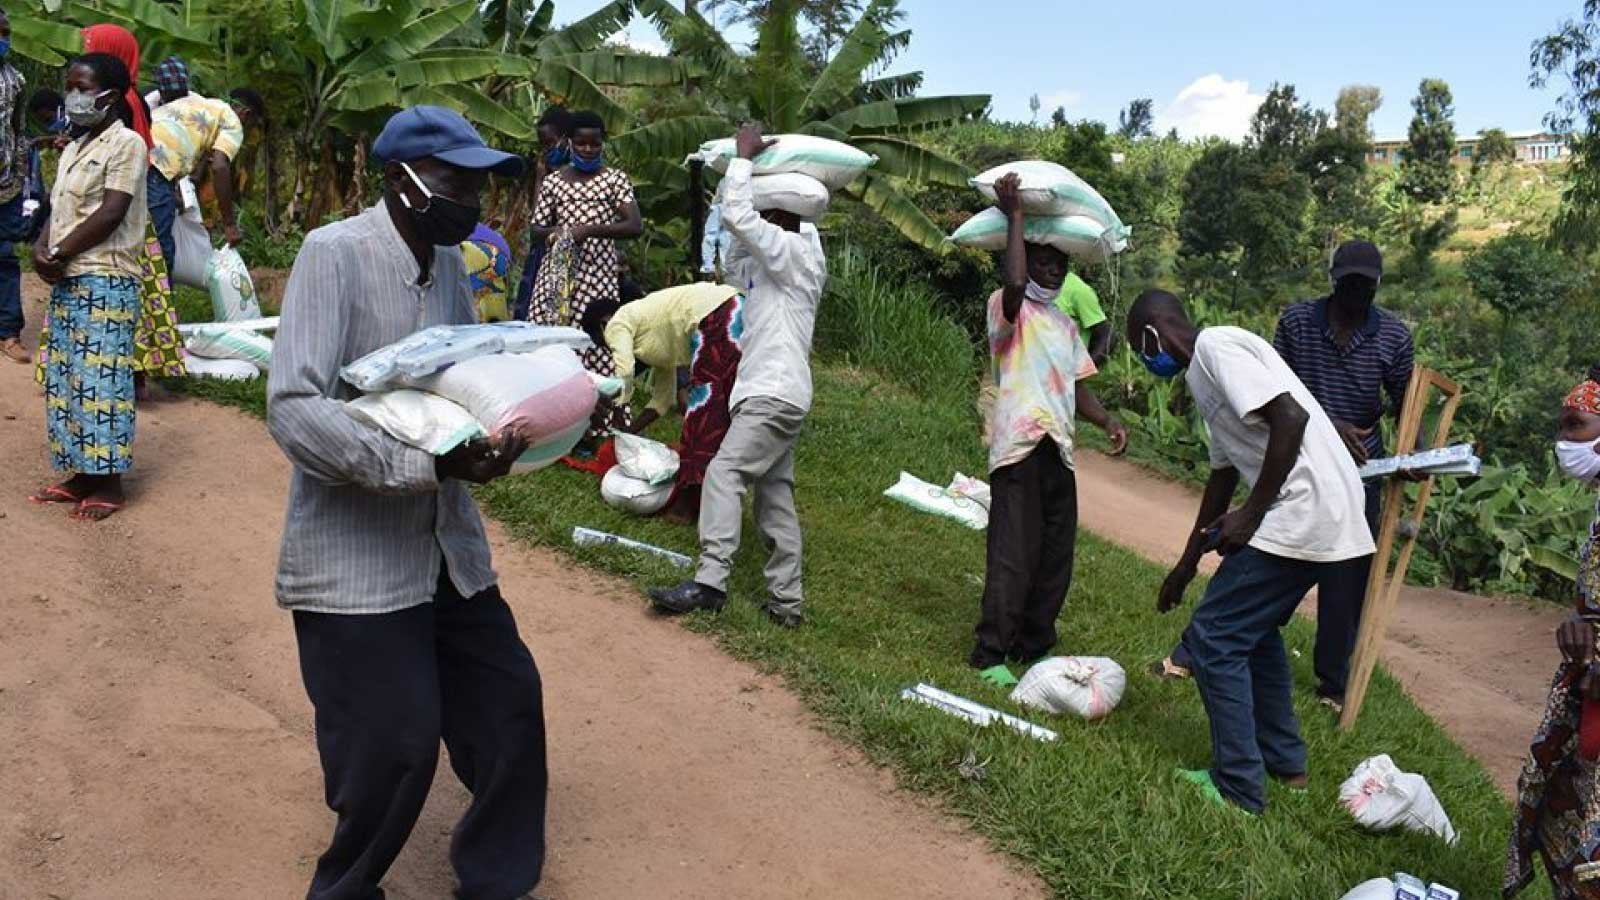 COVID-19 in Rwanda | Distributing food to Rwandans who need it most